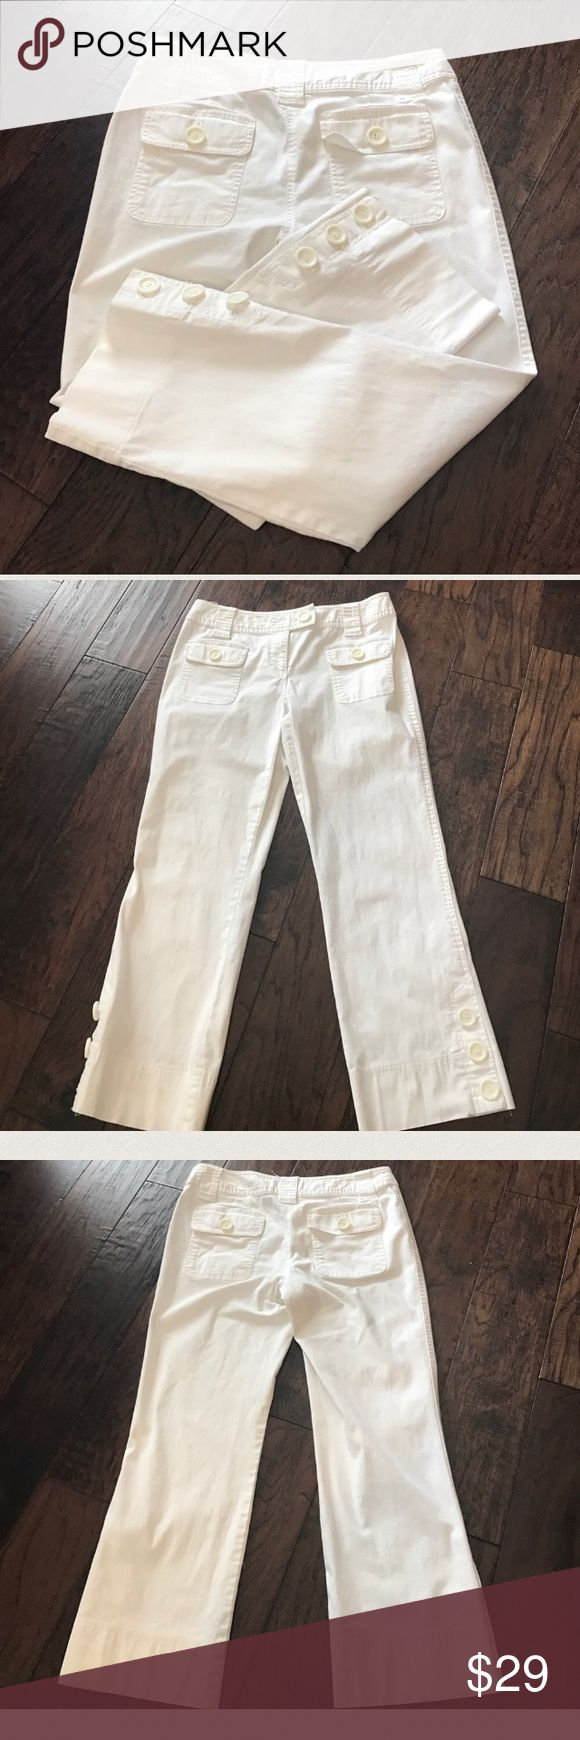 EUC White INC Crop Brand:  INC   Style: white cropped with buttons  Measurements Laying Flat:   Waist-   15.   Total-  30 Front Rise:  8.5 Back Rise: 14 Inseam- 25 Size- 4   CONDITION: EUC  ❌Trades❌  ⚡️I ship lightening fast⚡️  🎉Discounts with bundles🎉 INC International Concepts Pants Ankle & Cropped